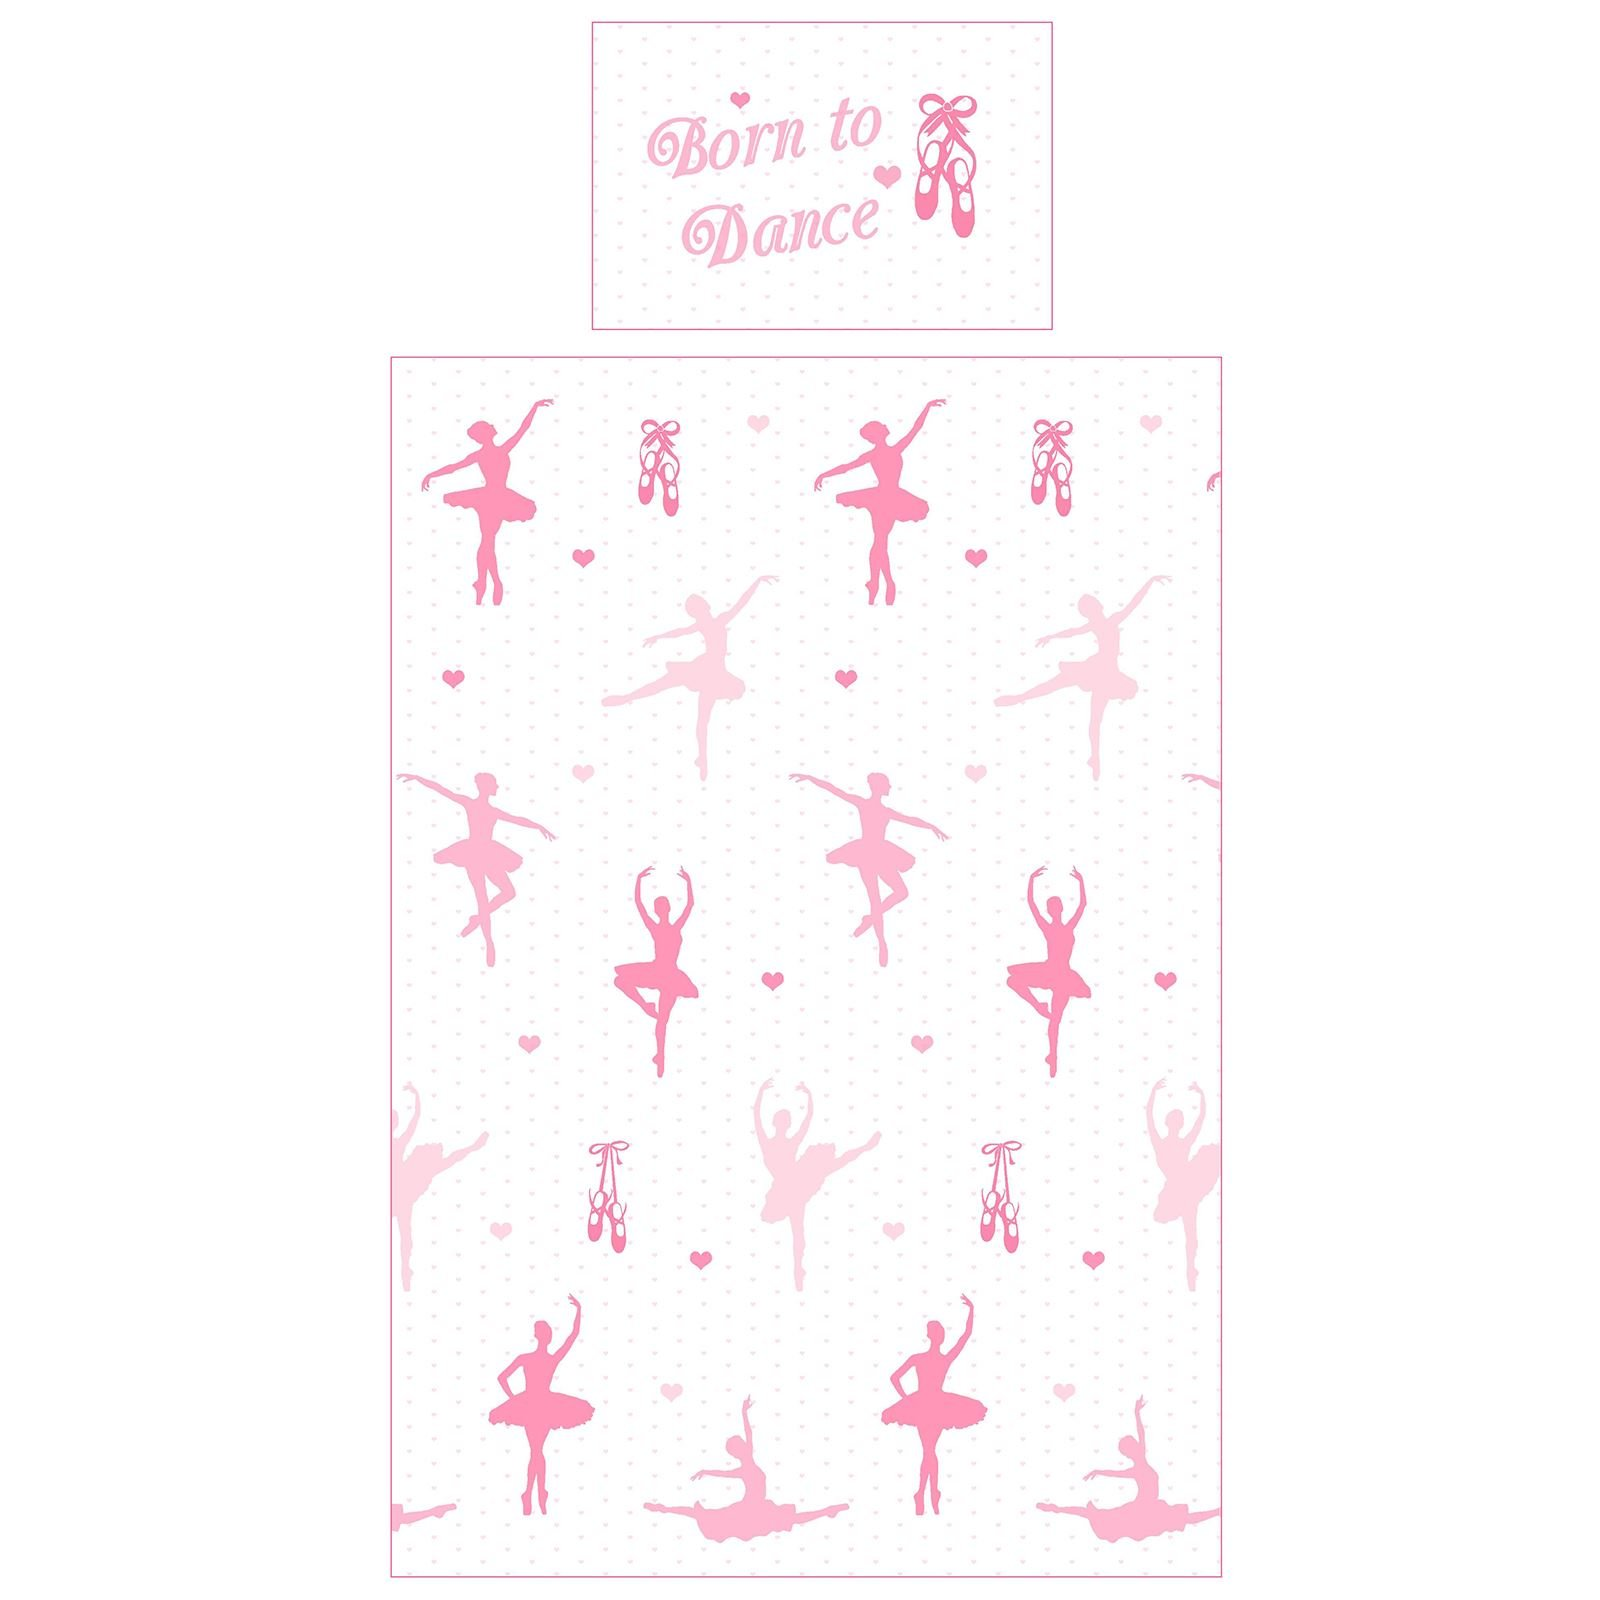 Price Right Home Born to Dance Ballerina Junior/Toddler Duvet Cover Set & Matching 66'' x 54'' Curtains (168cm x 137cm)